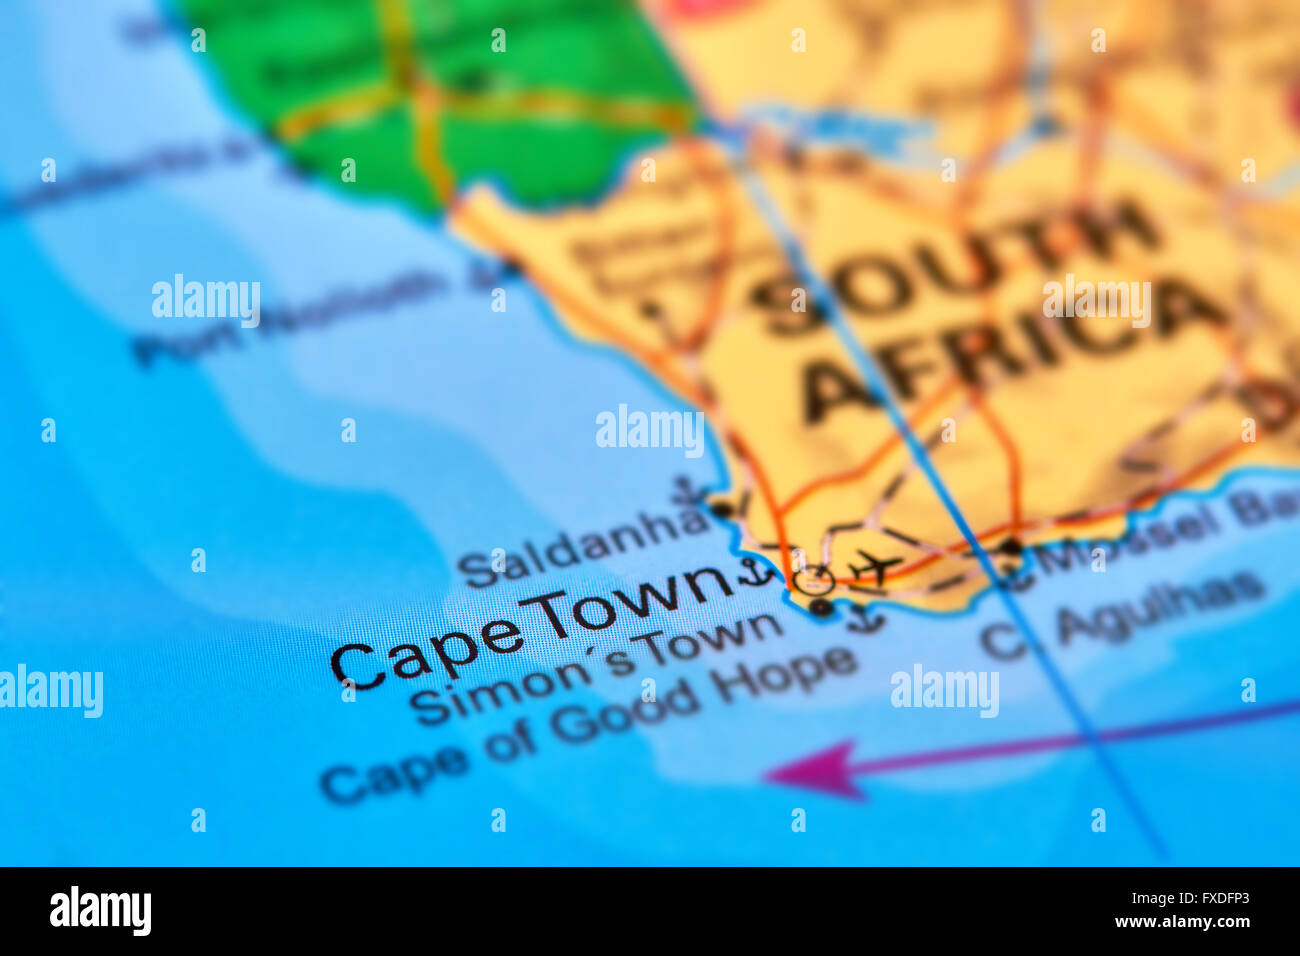 Cape town capital city of south africa on the world map stock photo cape town capital city of south africa on the world map gumiabroncs